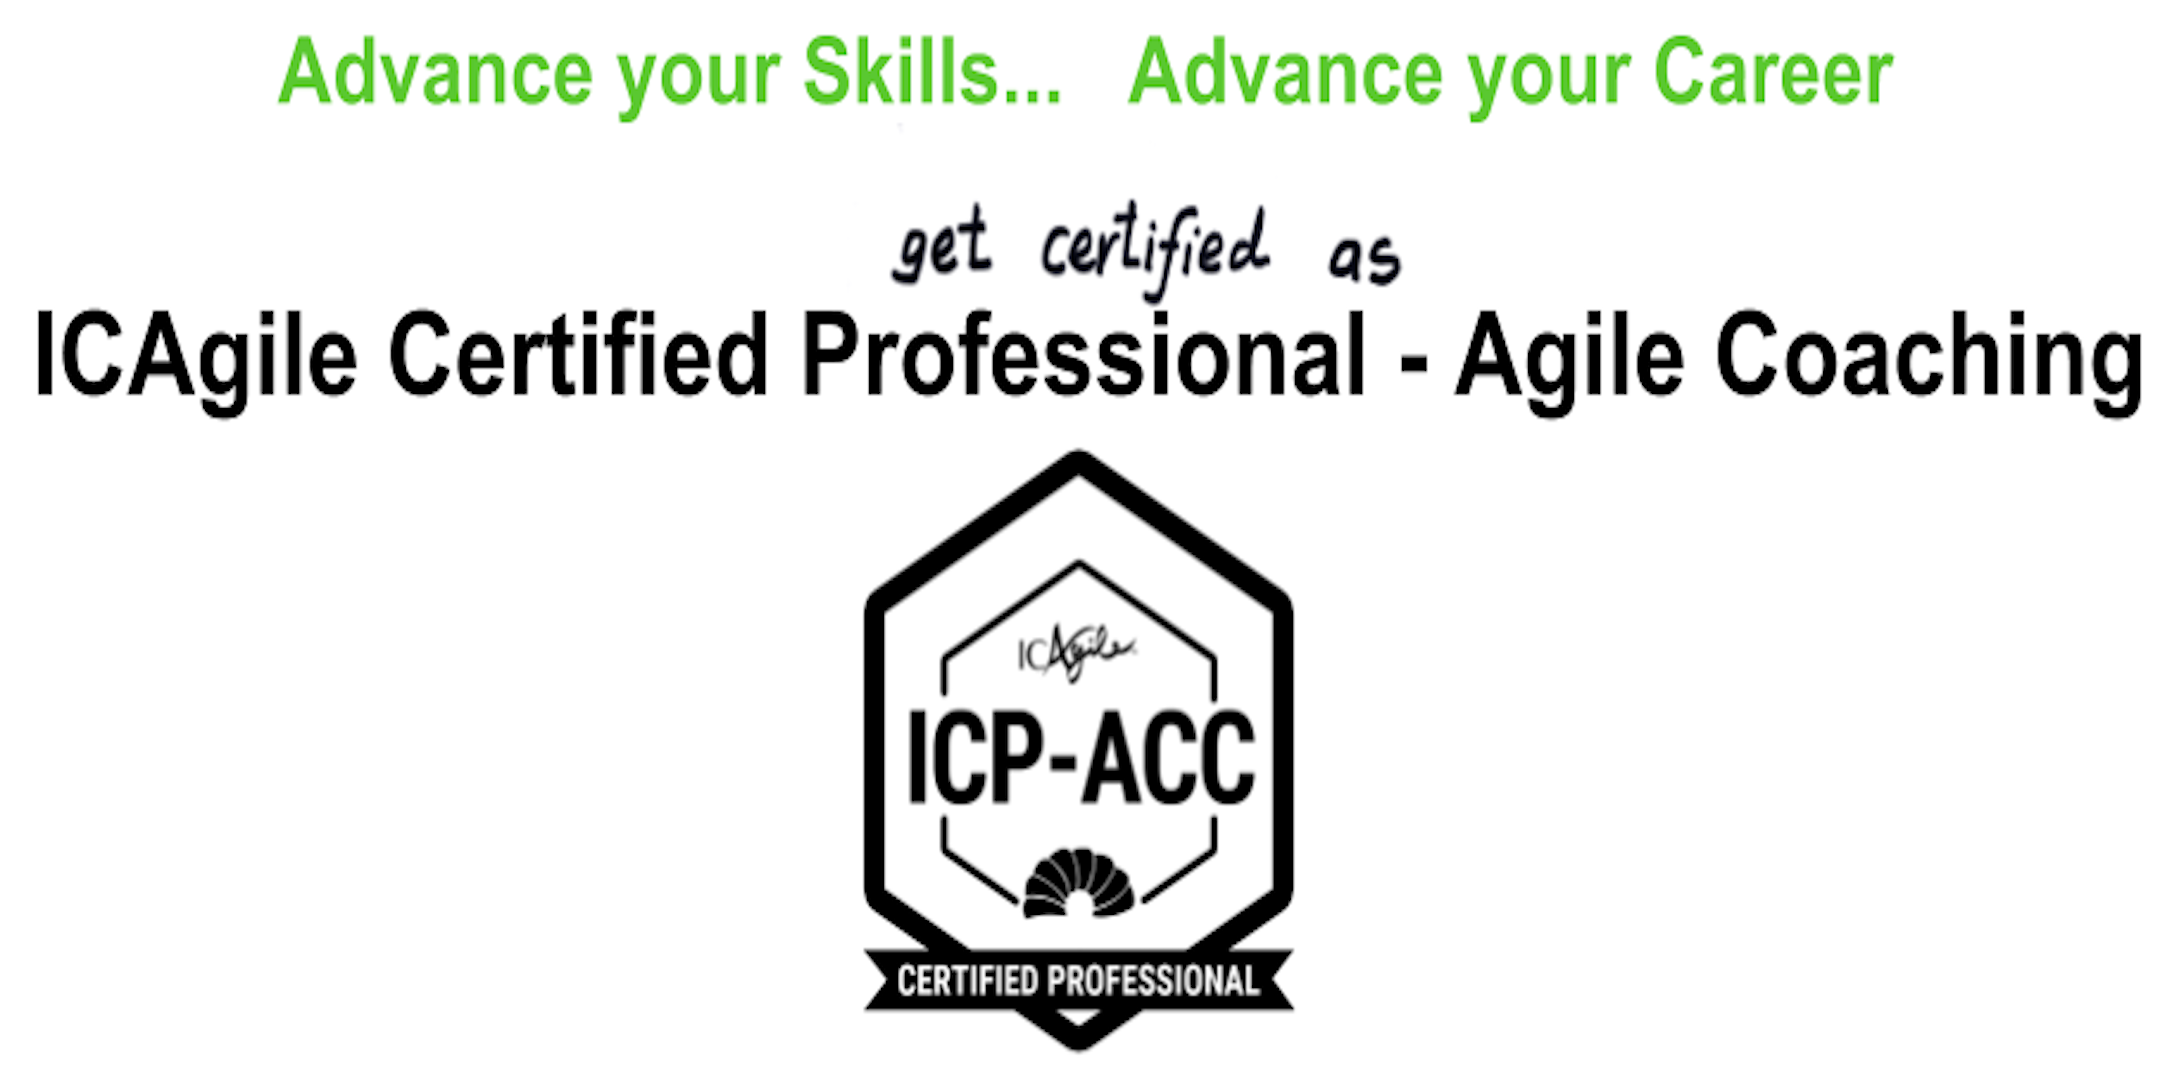 ICAgile Certified Professional - Agile Coaching (ICP ACC) Workshop - Brooklyn - New York City (NYC) - NY